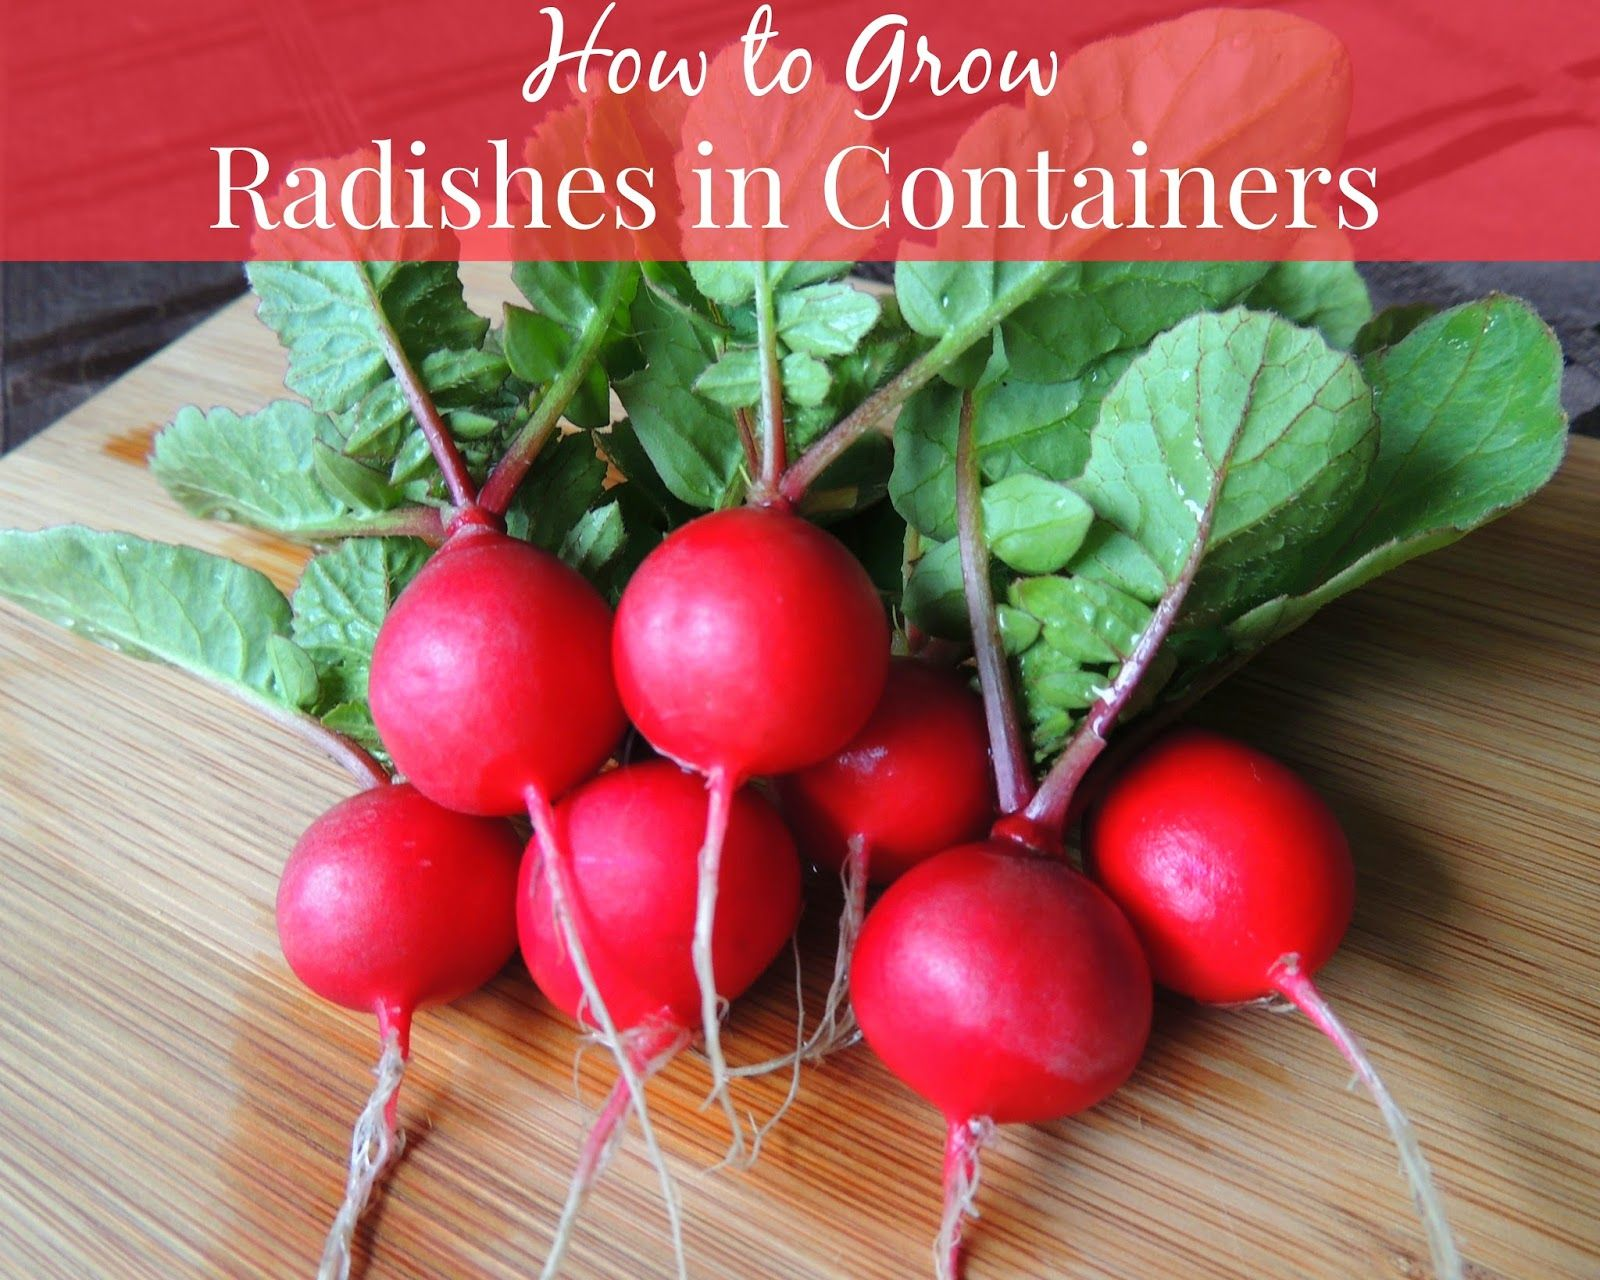 How To Grow Radishes In Containers Super Easy M*T*R* In 400 x 300